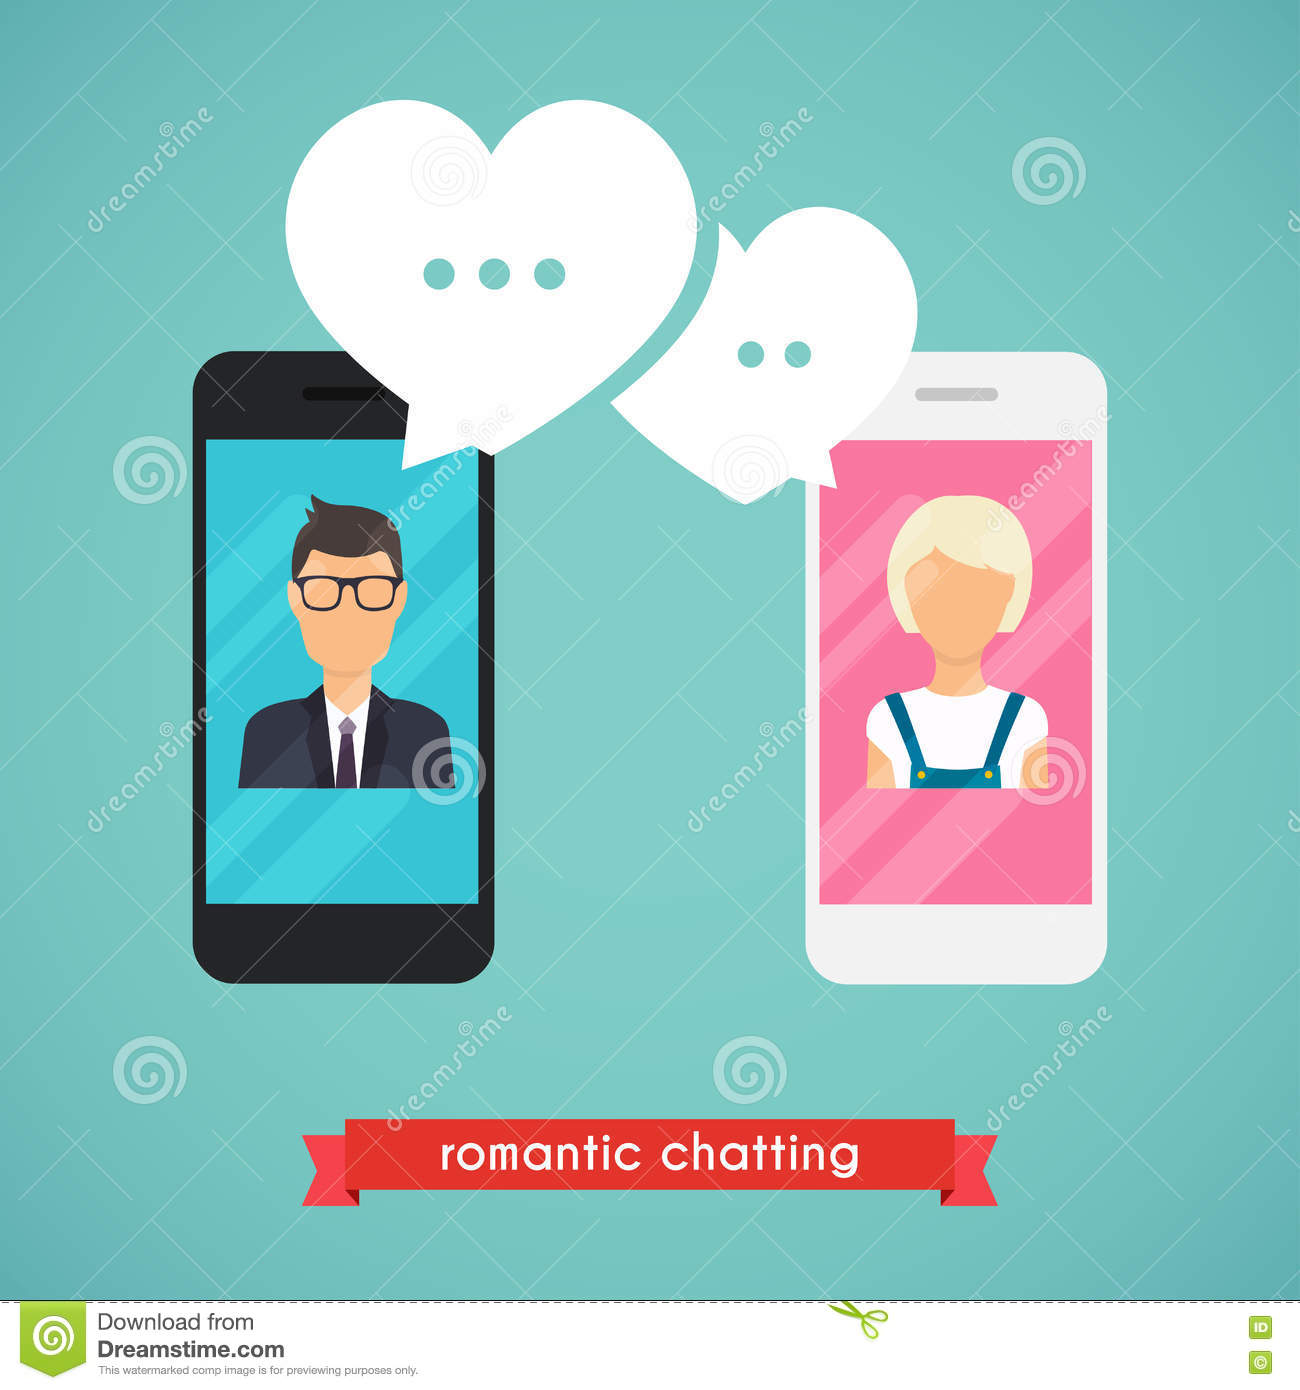 Online dating and chat